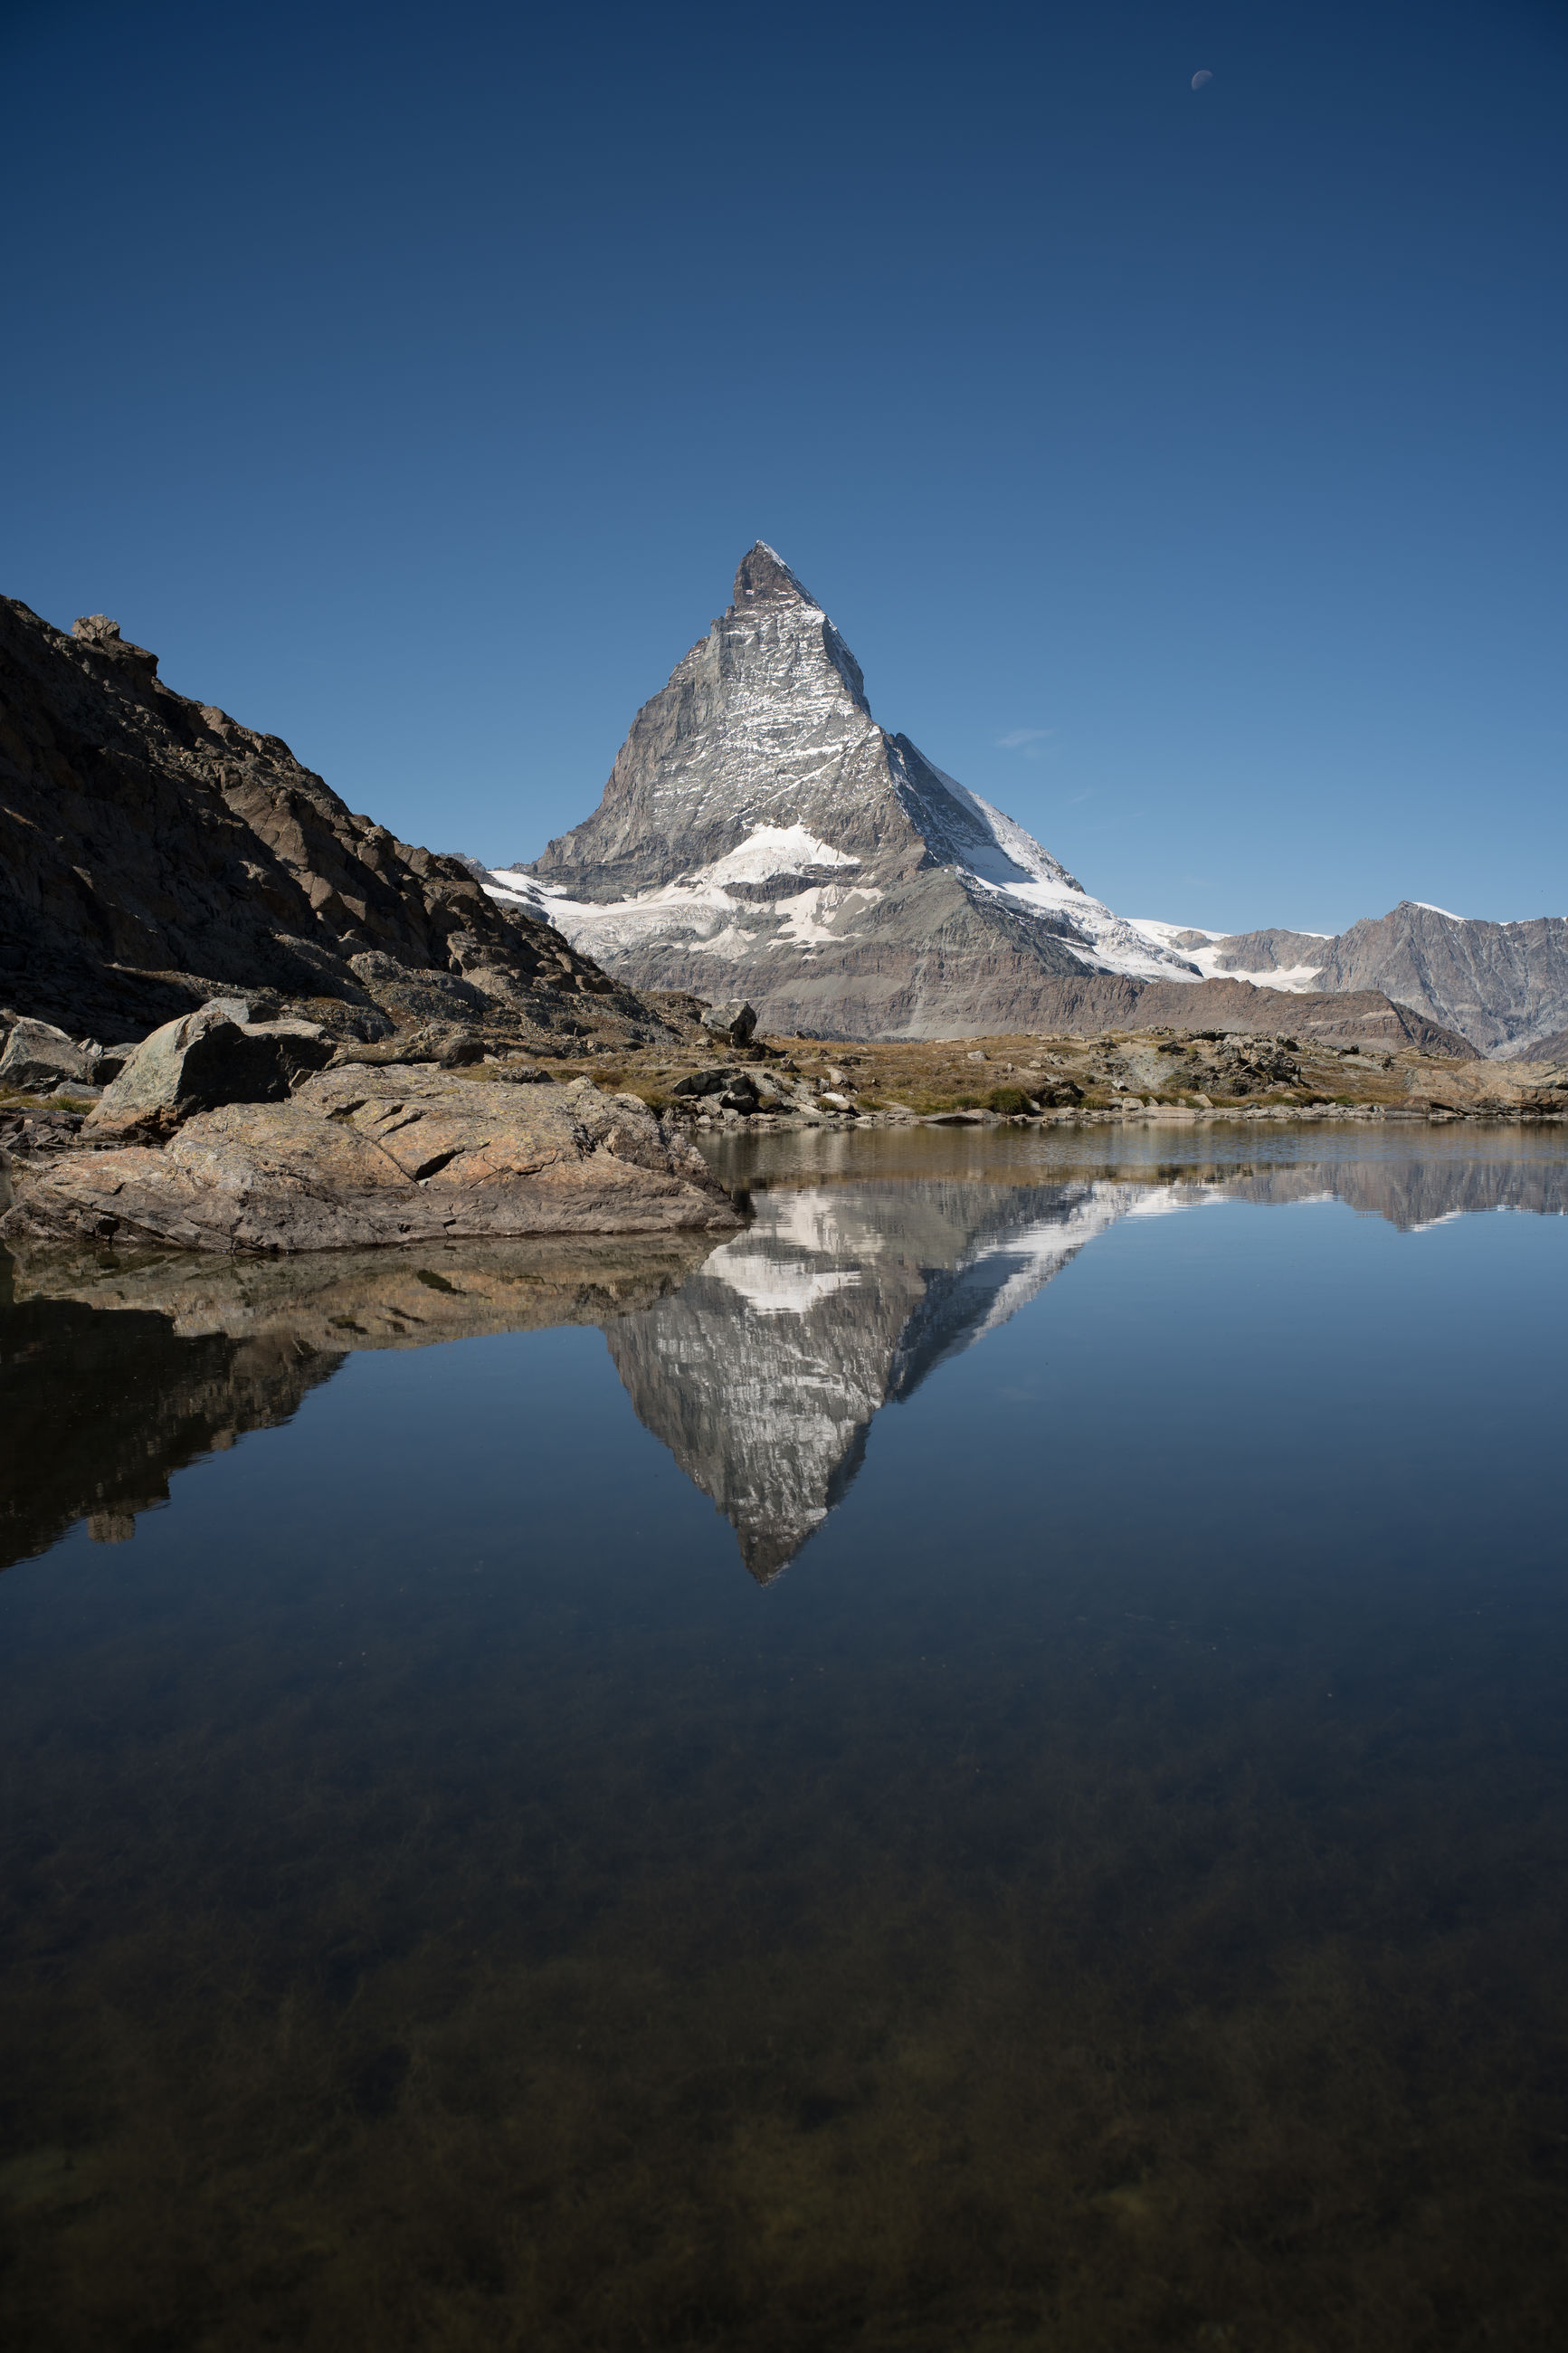 reflection, mountain, water, scenics - nature, environment, beauty in nature, sky, landscape, snow, lake, cold temperature, nature, winter, snowcapped mountain, mountain range, blue, tranquility, travel destinations, no people, tranquil scene, wilderness, clear sky, travel, mountain peak, land, outdoors, non-urban scene, ice, glacier, idyllic, sunny